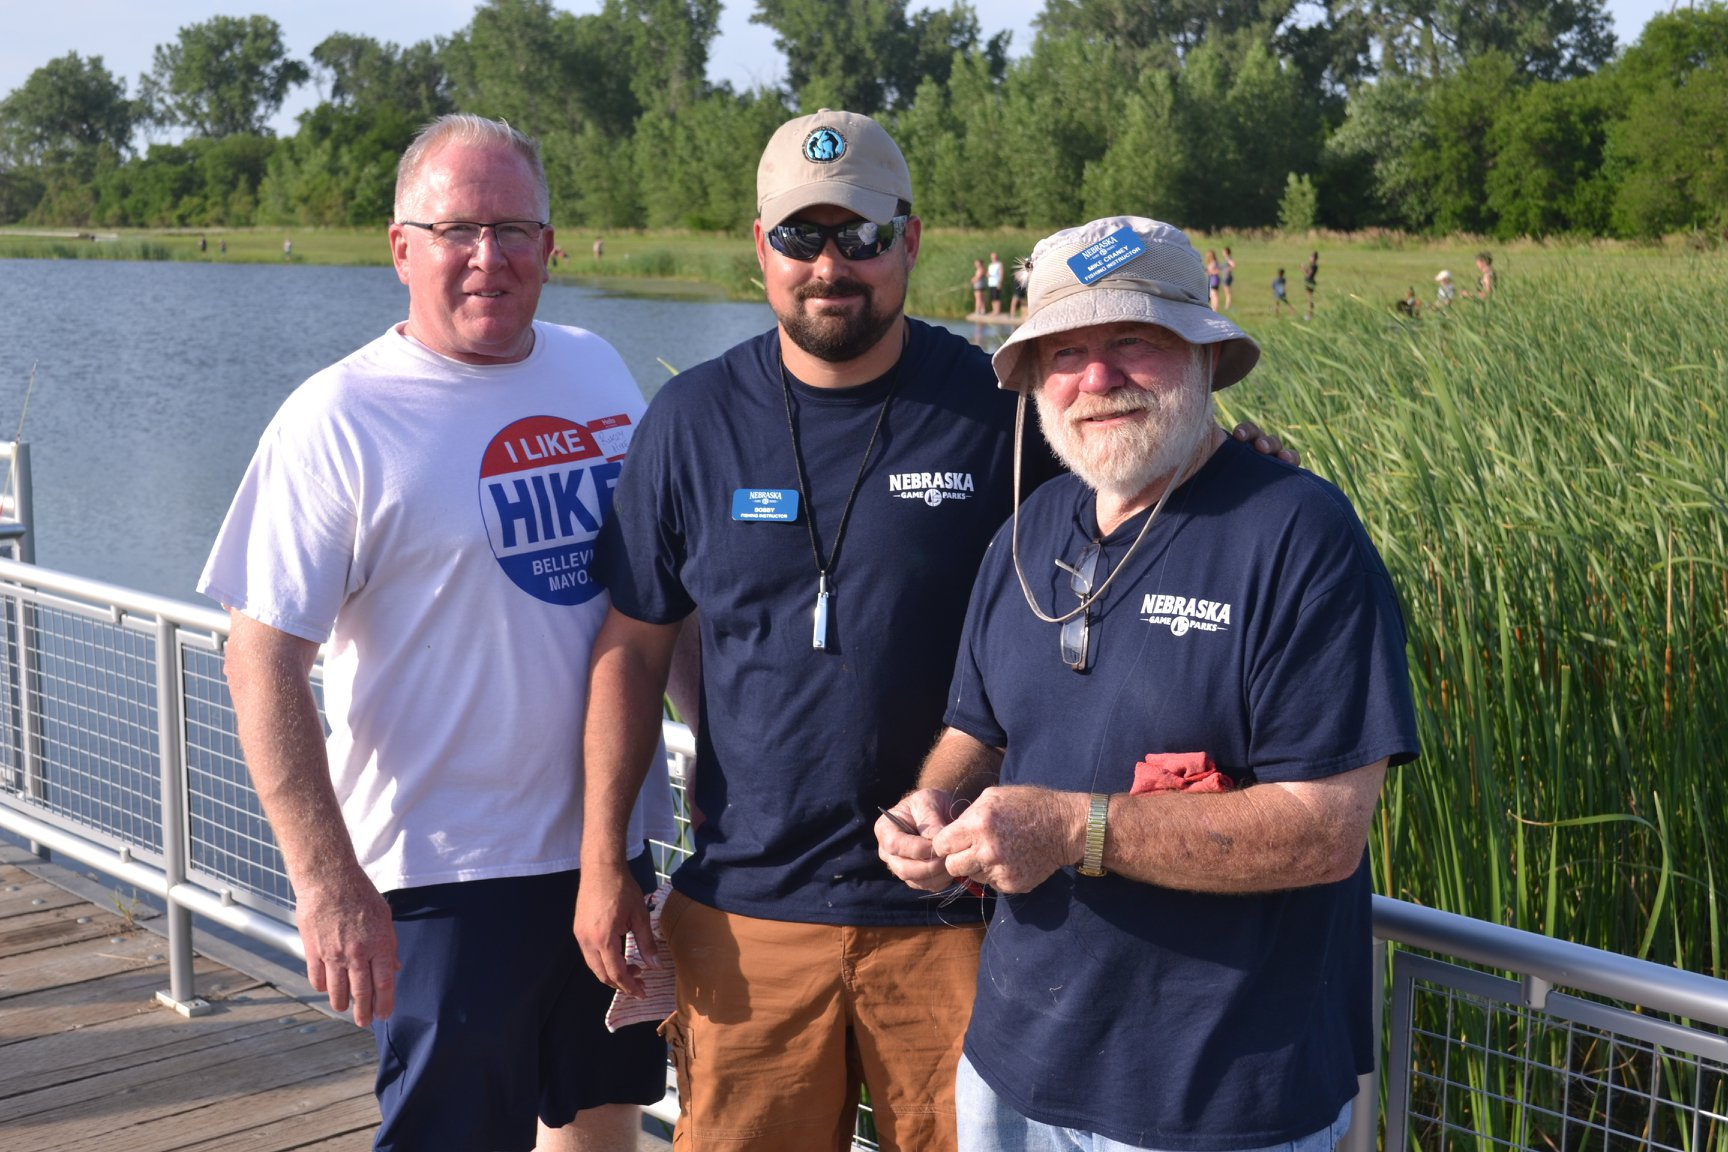 Mayor Hike and Fishing Instructors